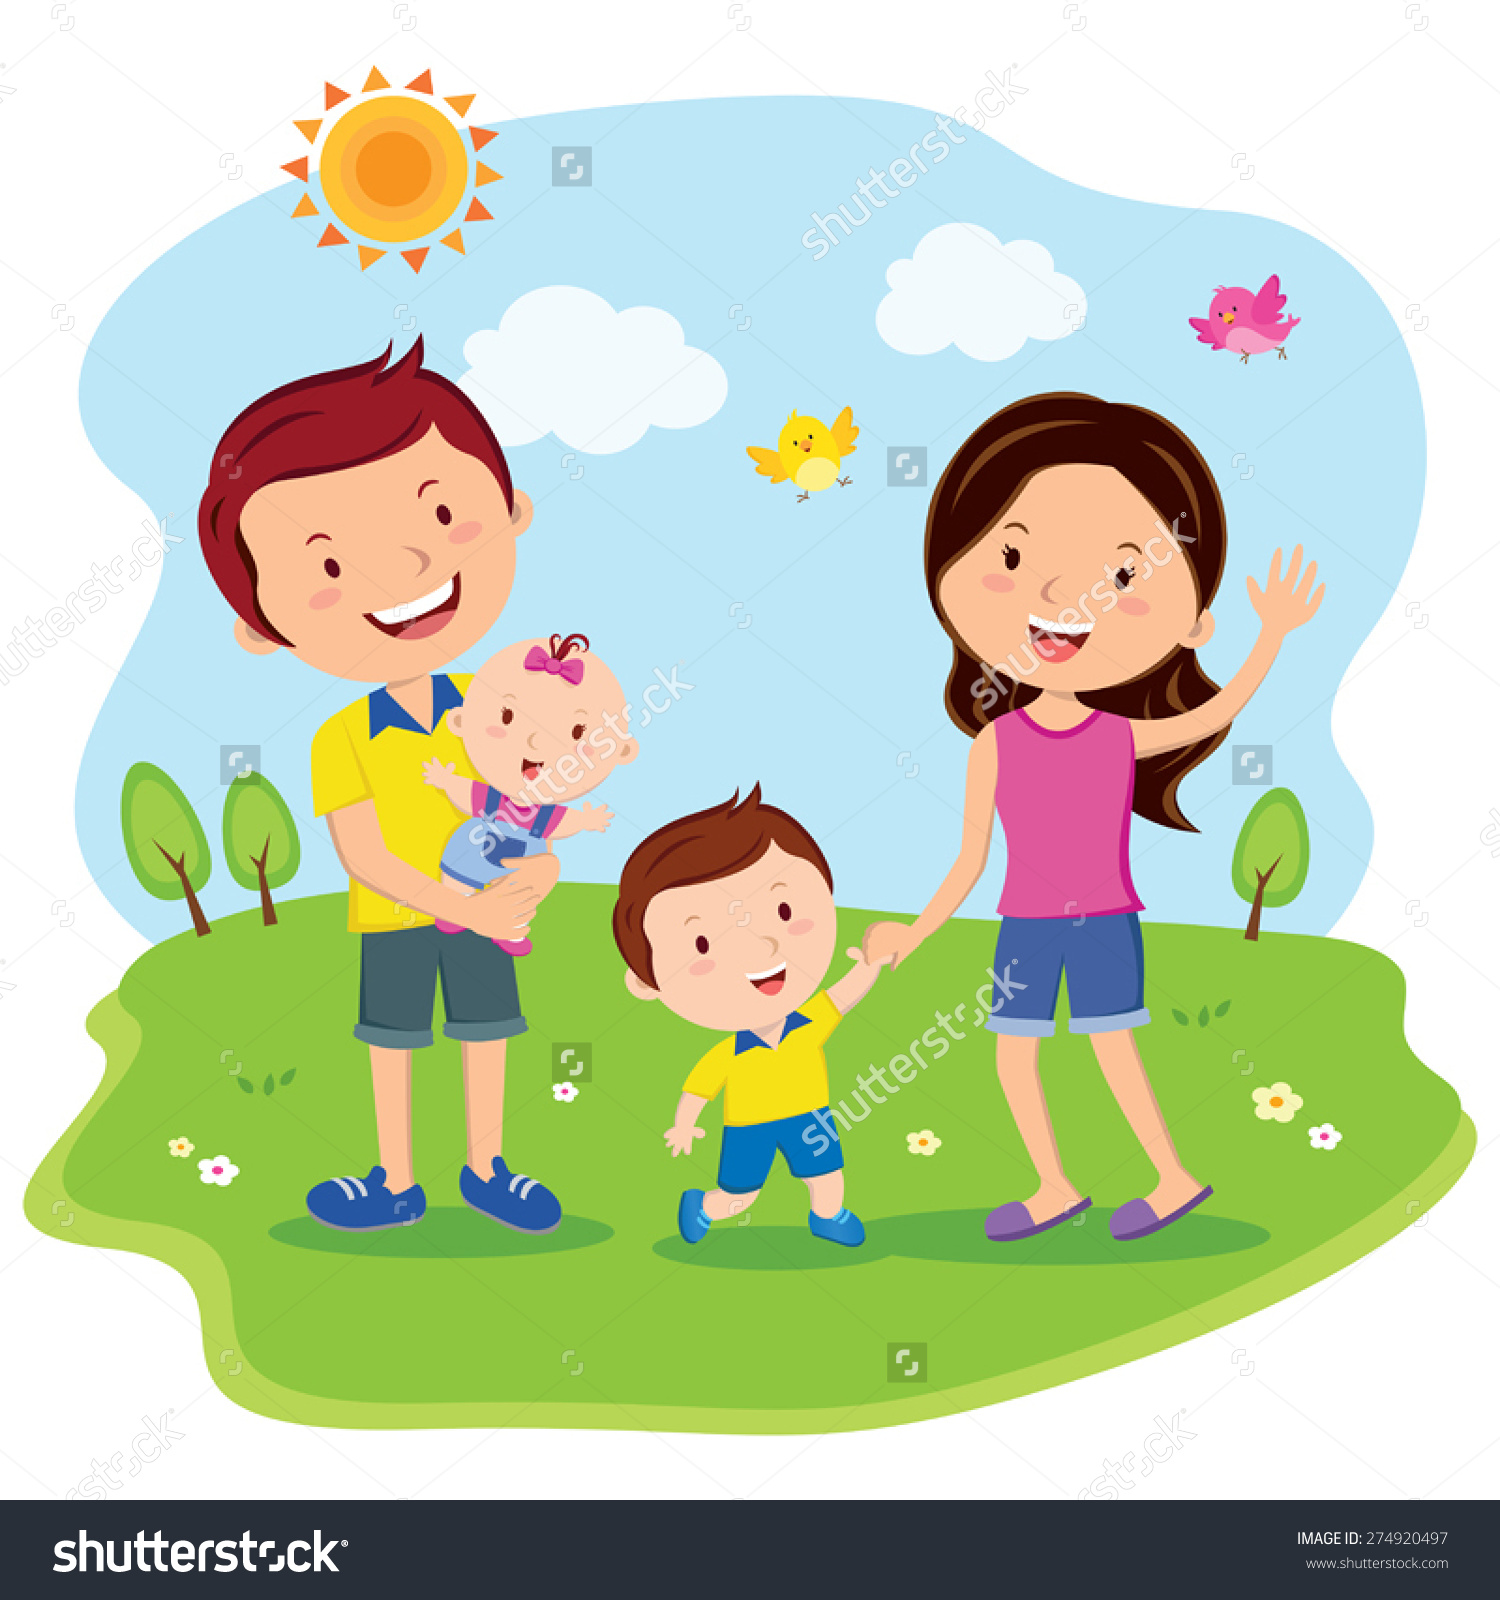 Happy Family Day Cheerful Family Outing Stock Vector 274920497.